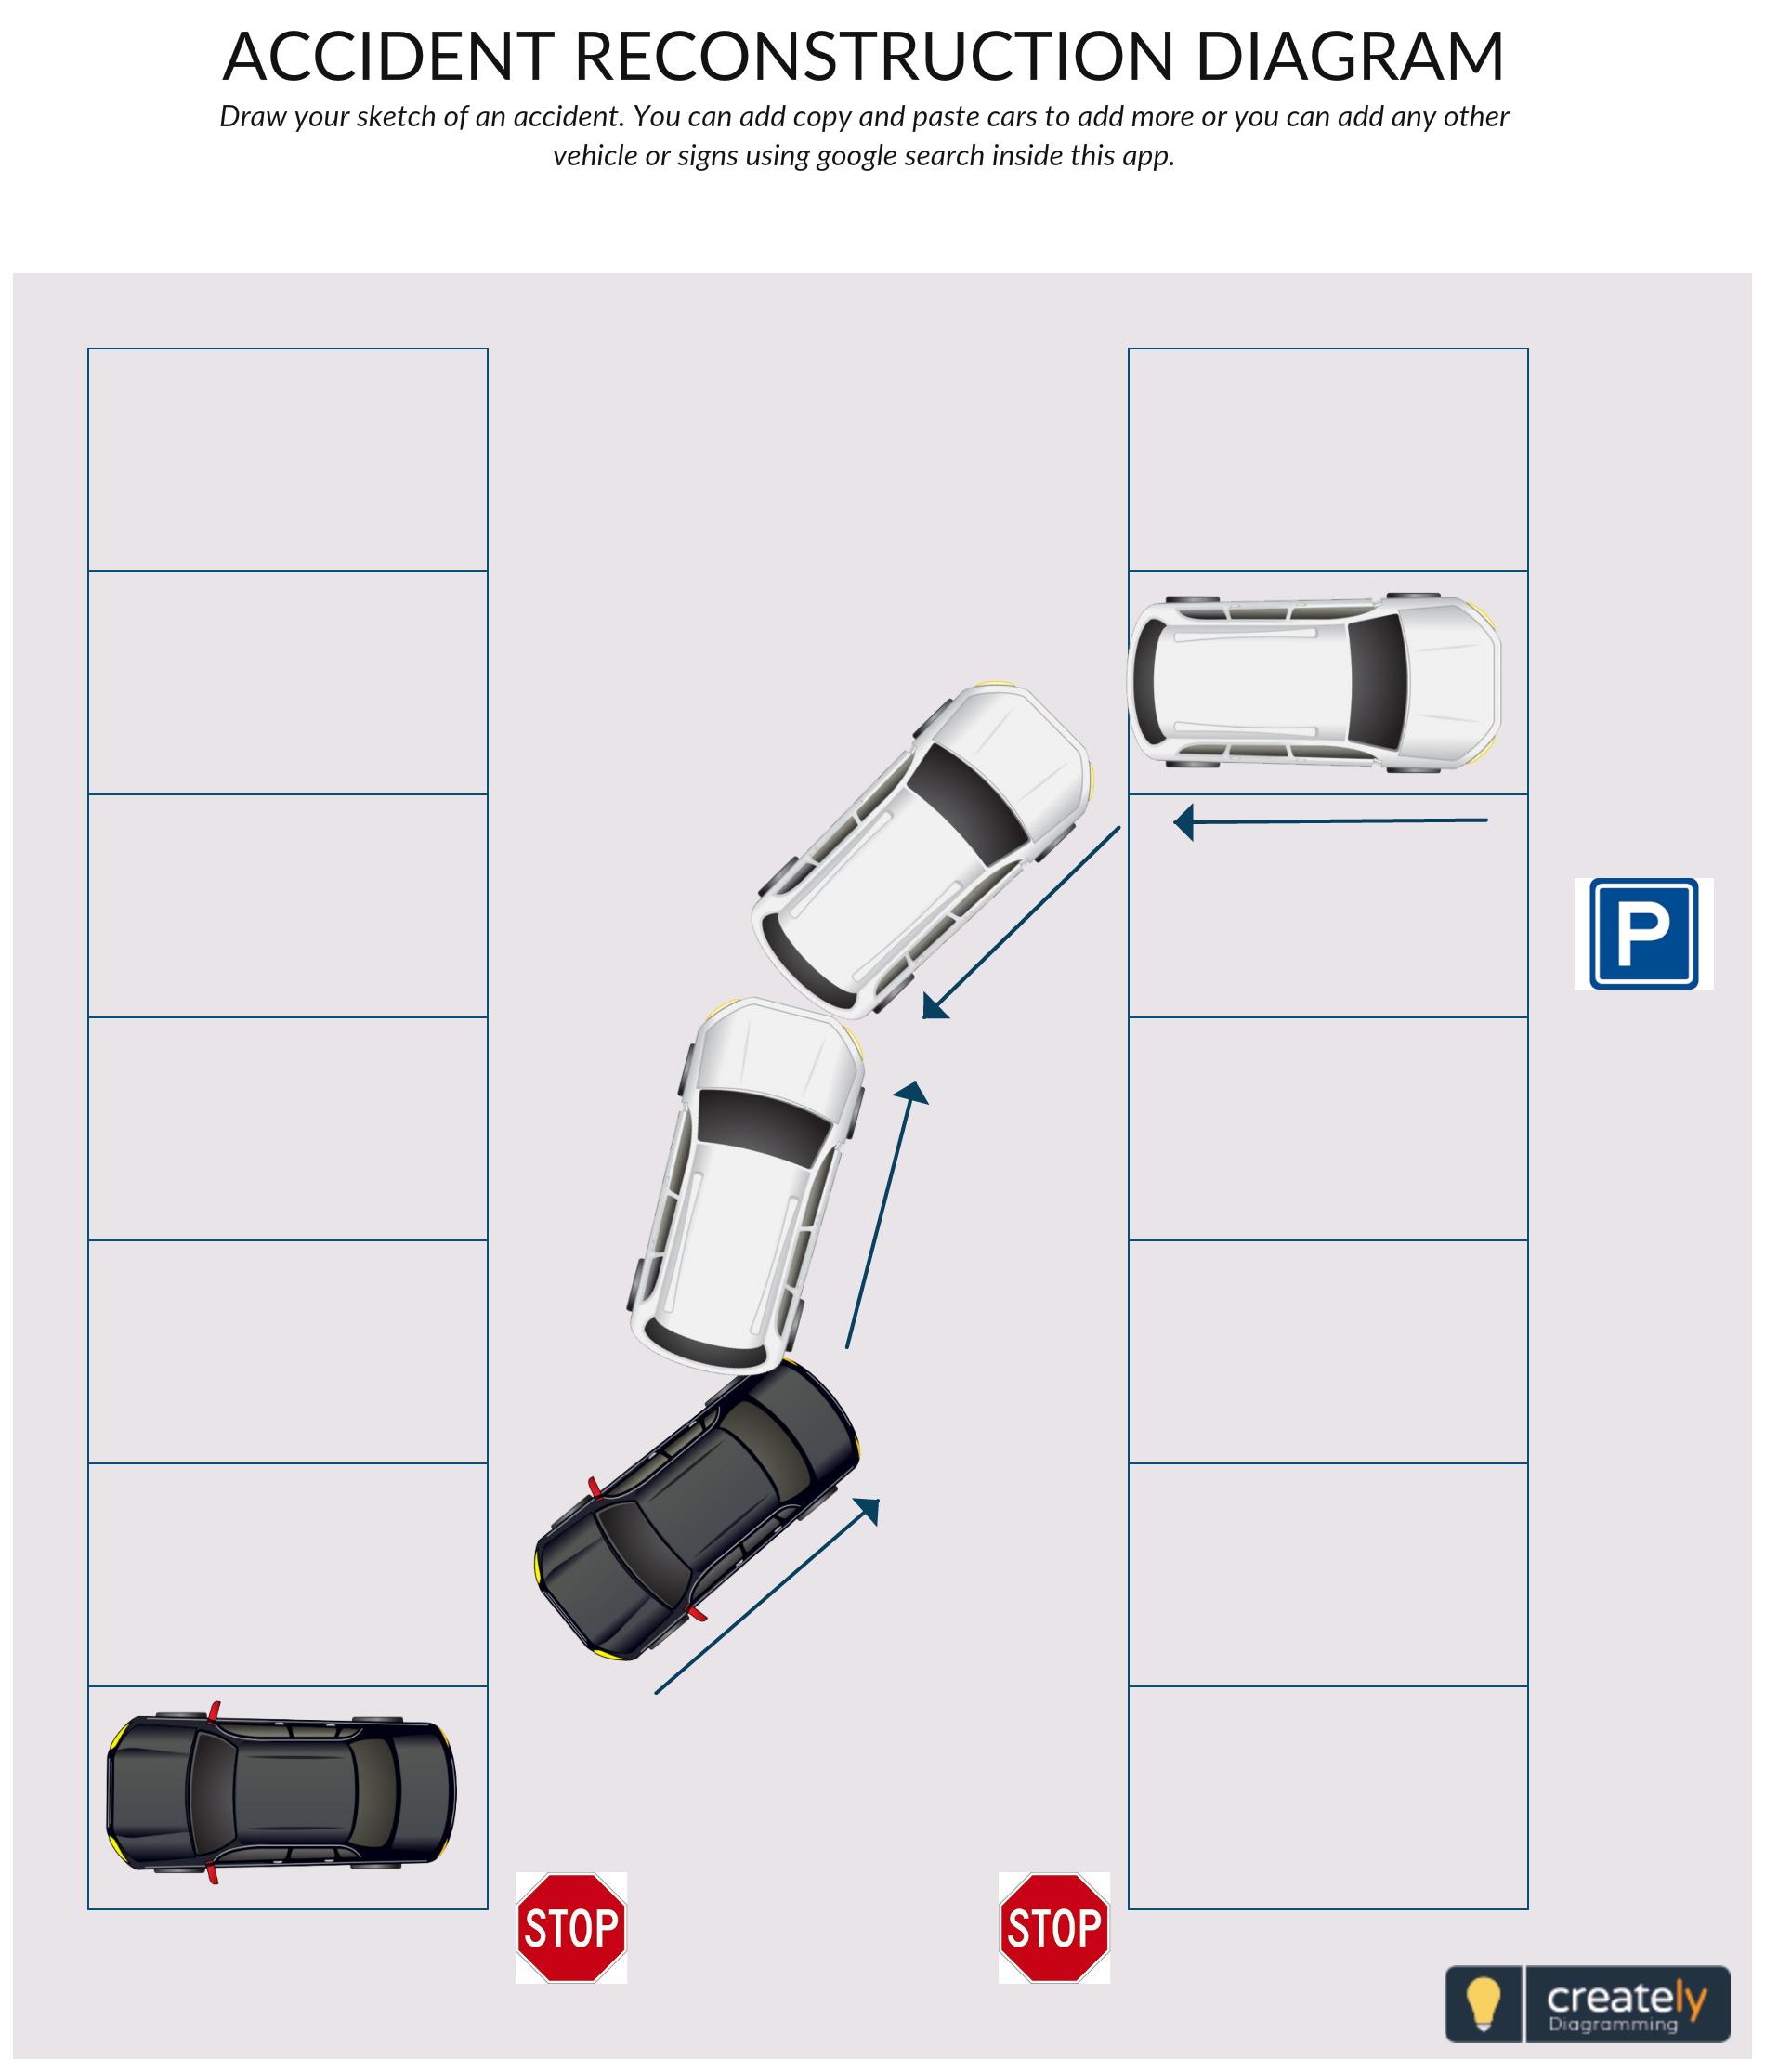 medium resolution of accident reconstruction diagram helps you sketch the sequence of events that lead to the accident and